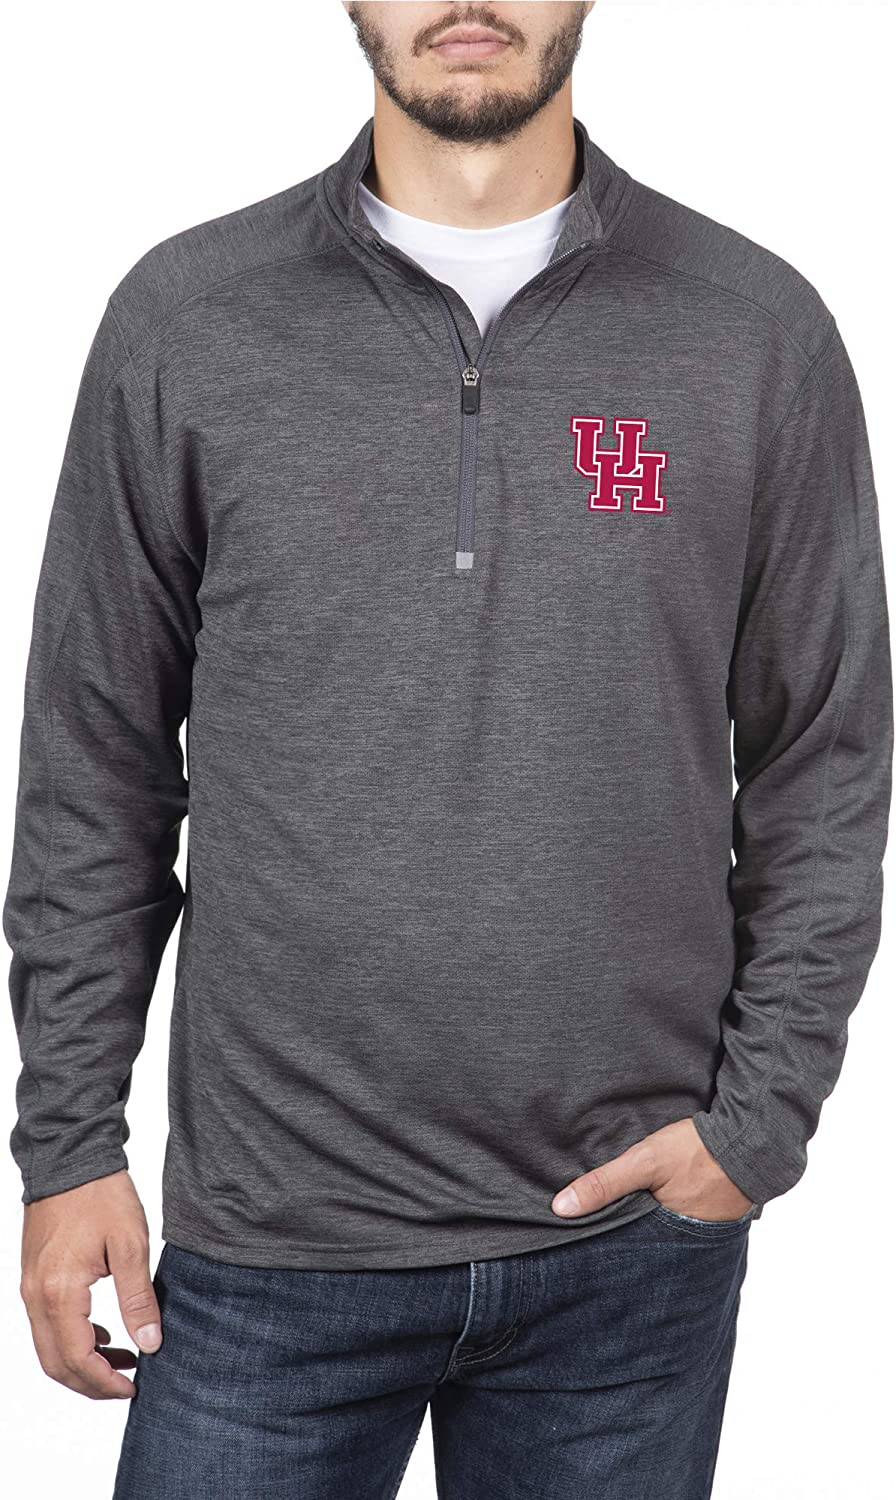 Top of the Outlet ☆ Free Excellence Shipping World Men's Dark Zip Heathered Poly Pullover Half